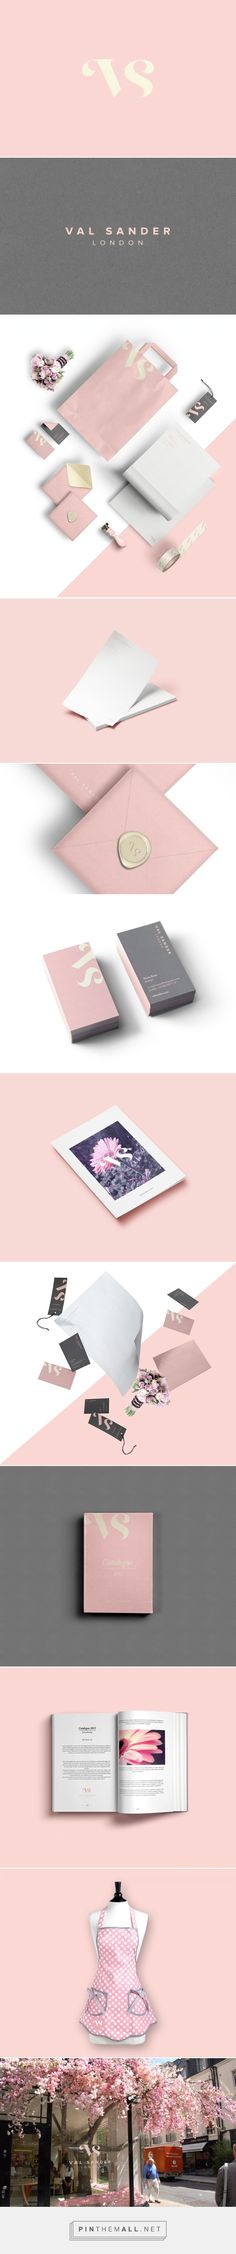 Val Sander's flower shop on Behance design and branding Graphisches Design, Logo Design, The Design Files, Brand Identity Design, Graphic Design Branding, Typography Design, Lettering, Brand Design, Modern Typography